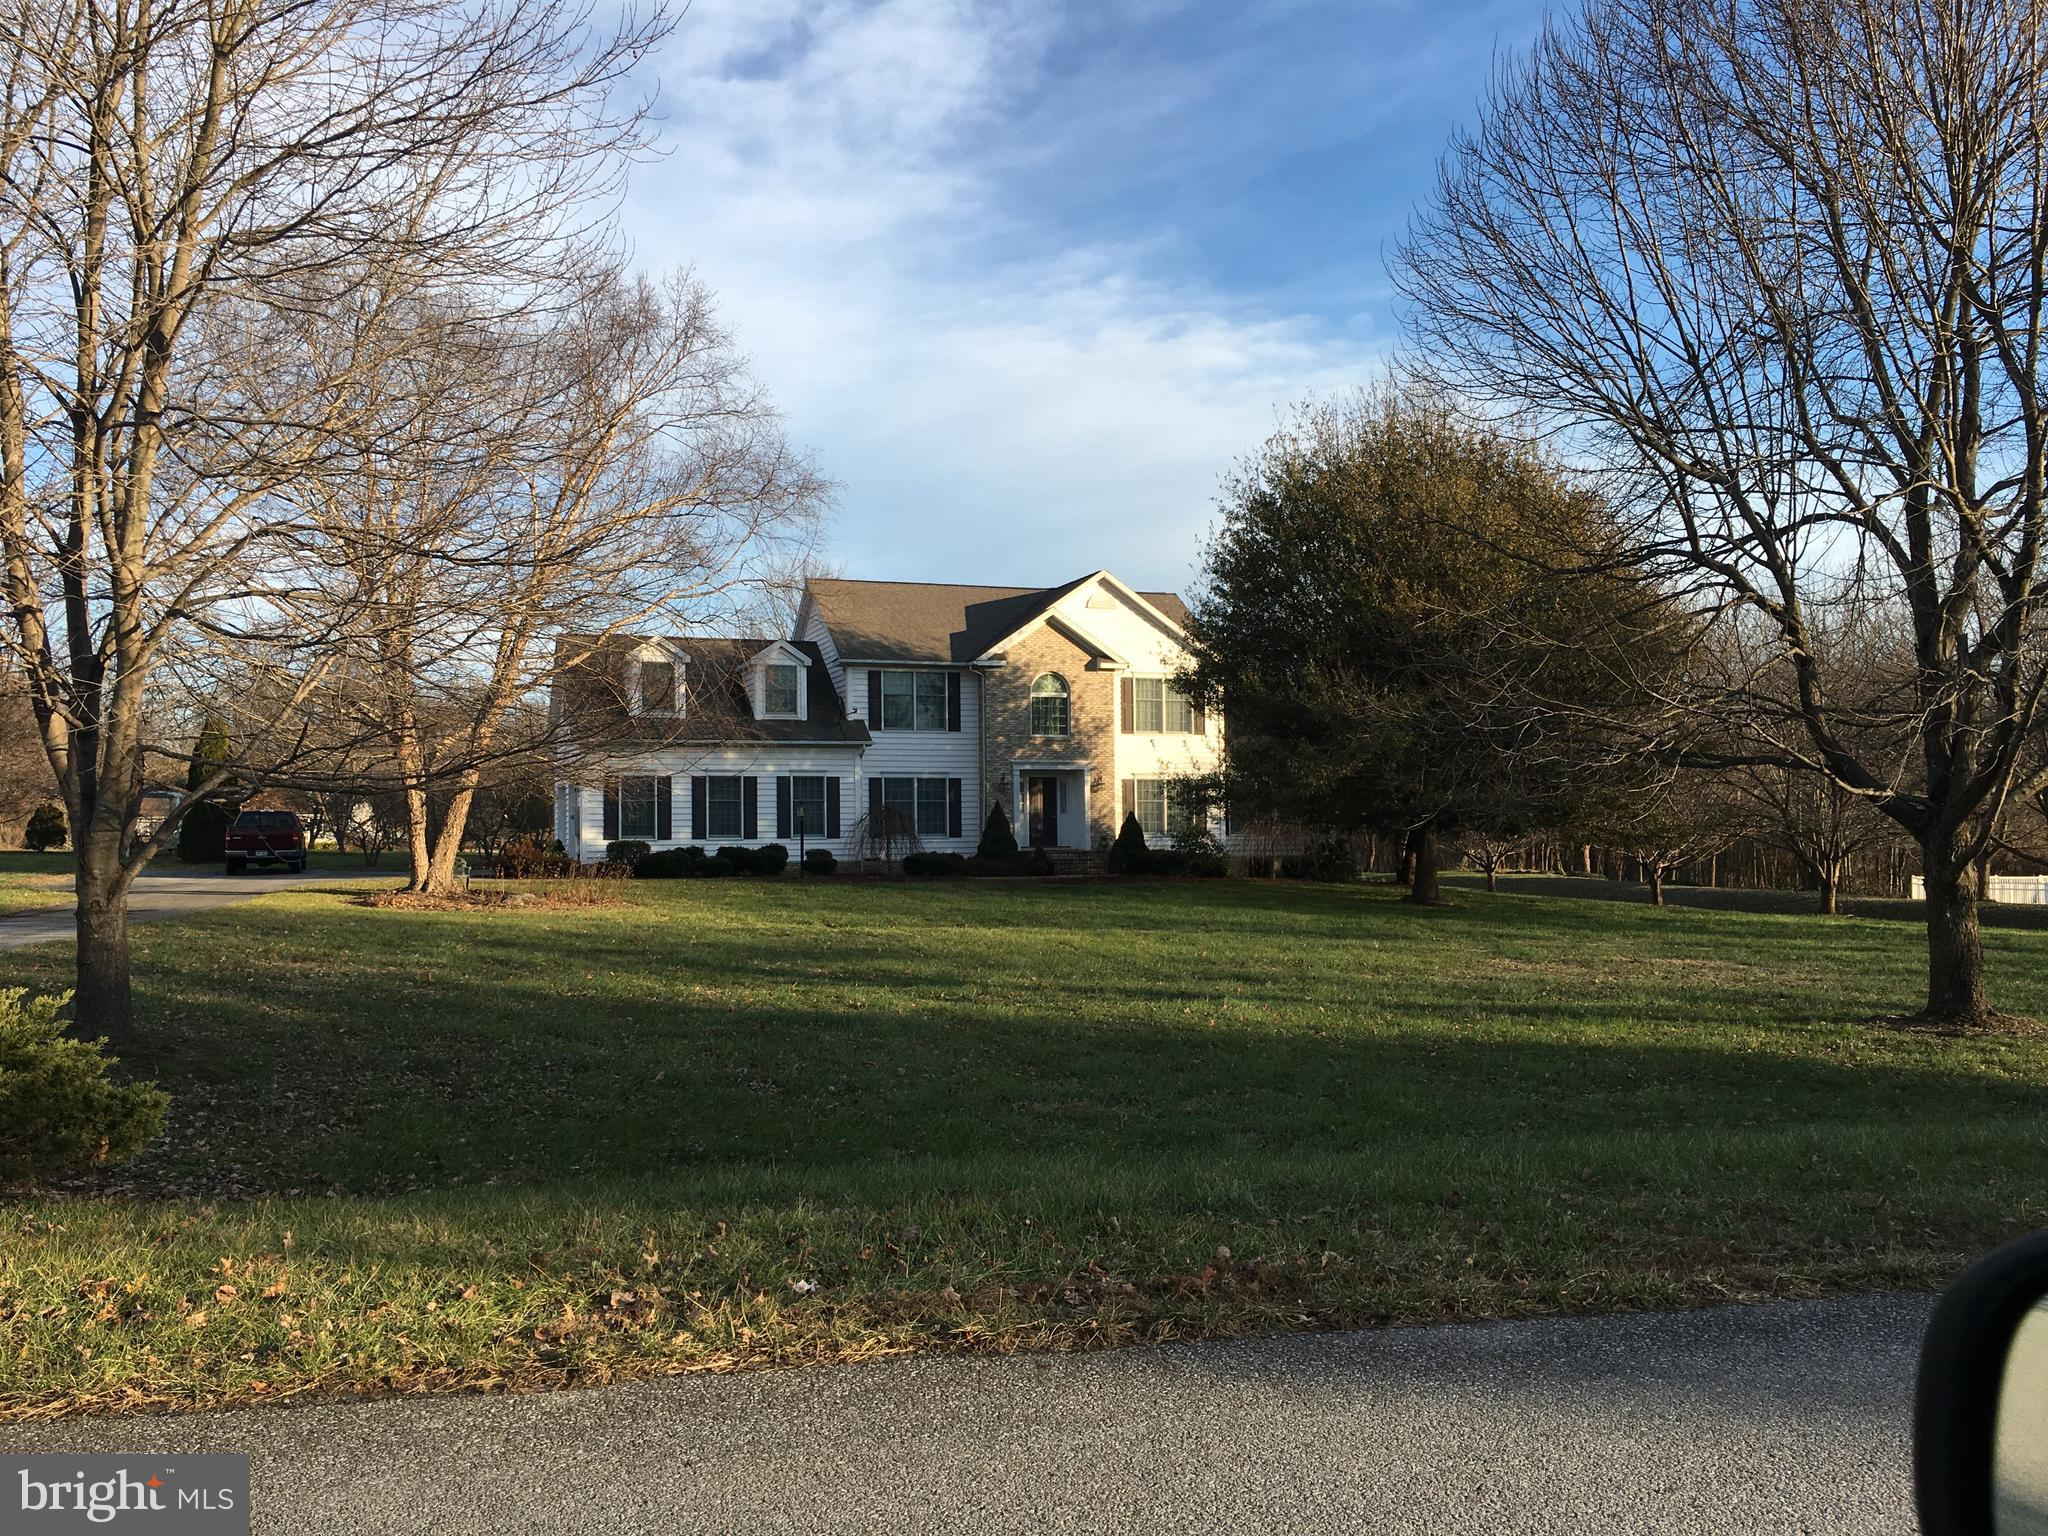 290 CARRIAGE DRIVE, HARPERS FERRY, WV 25425